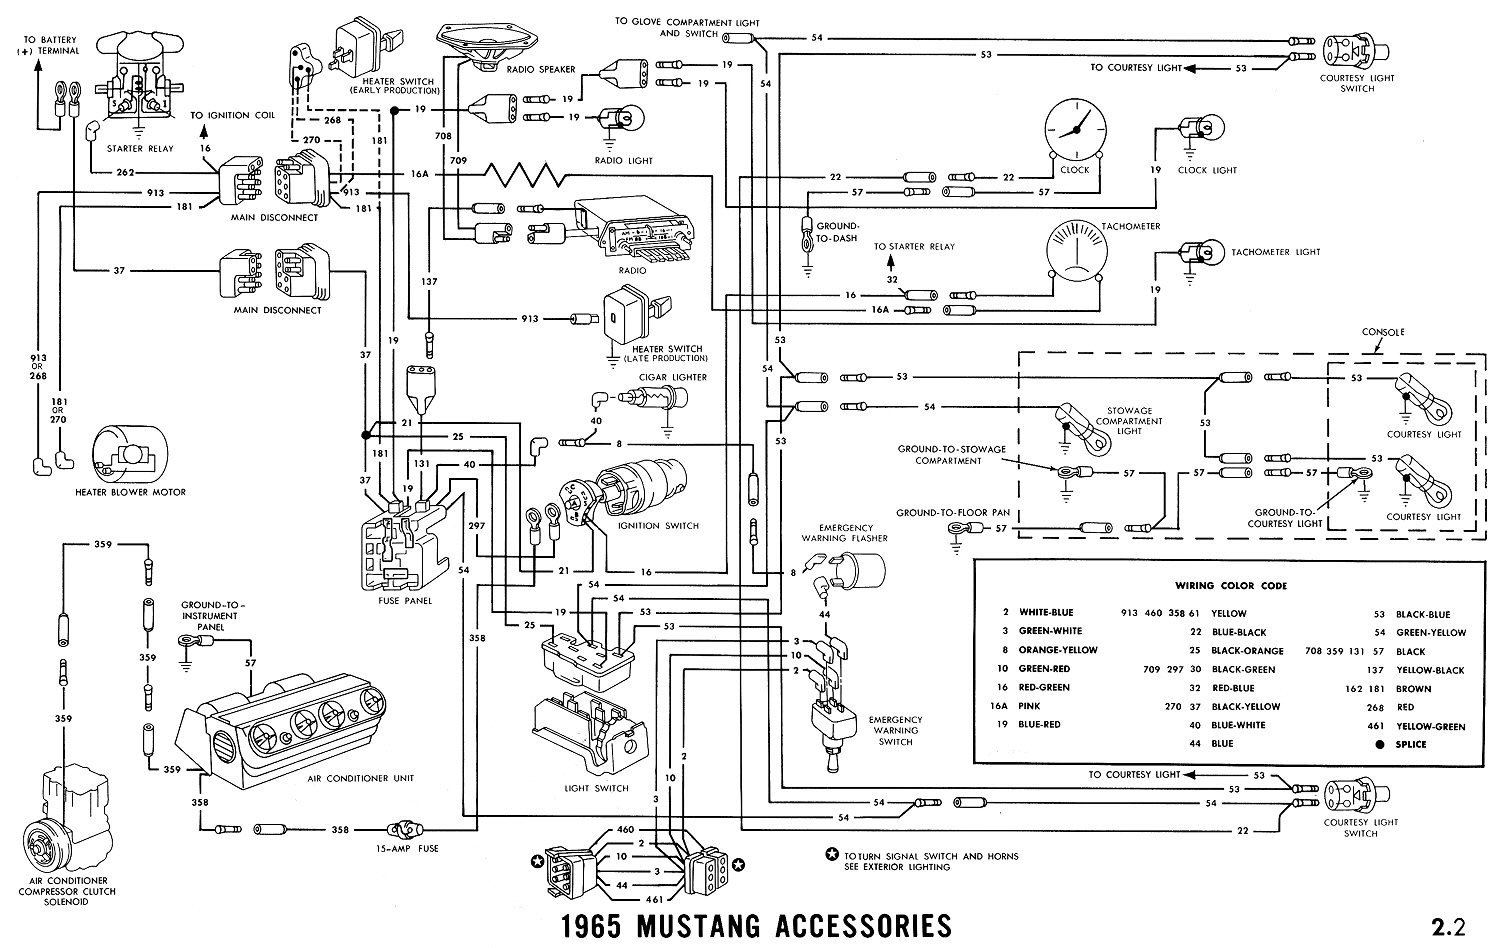 1965 mustang wiring diagram free download  1965  get free